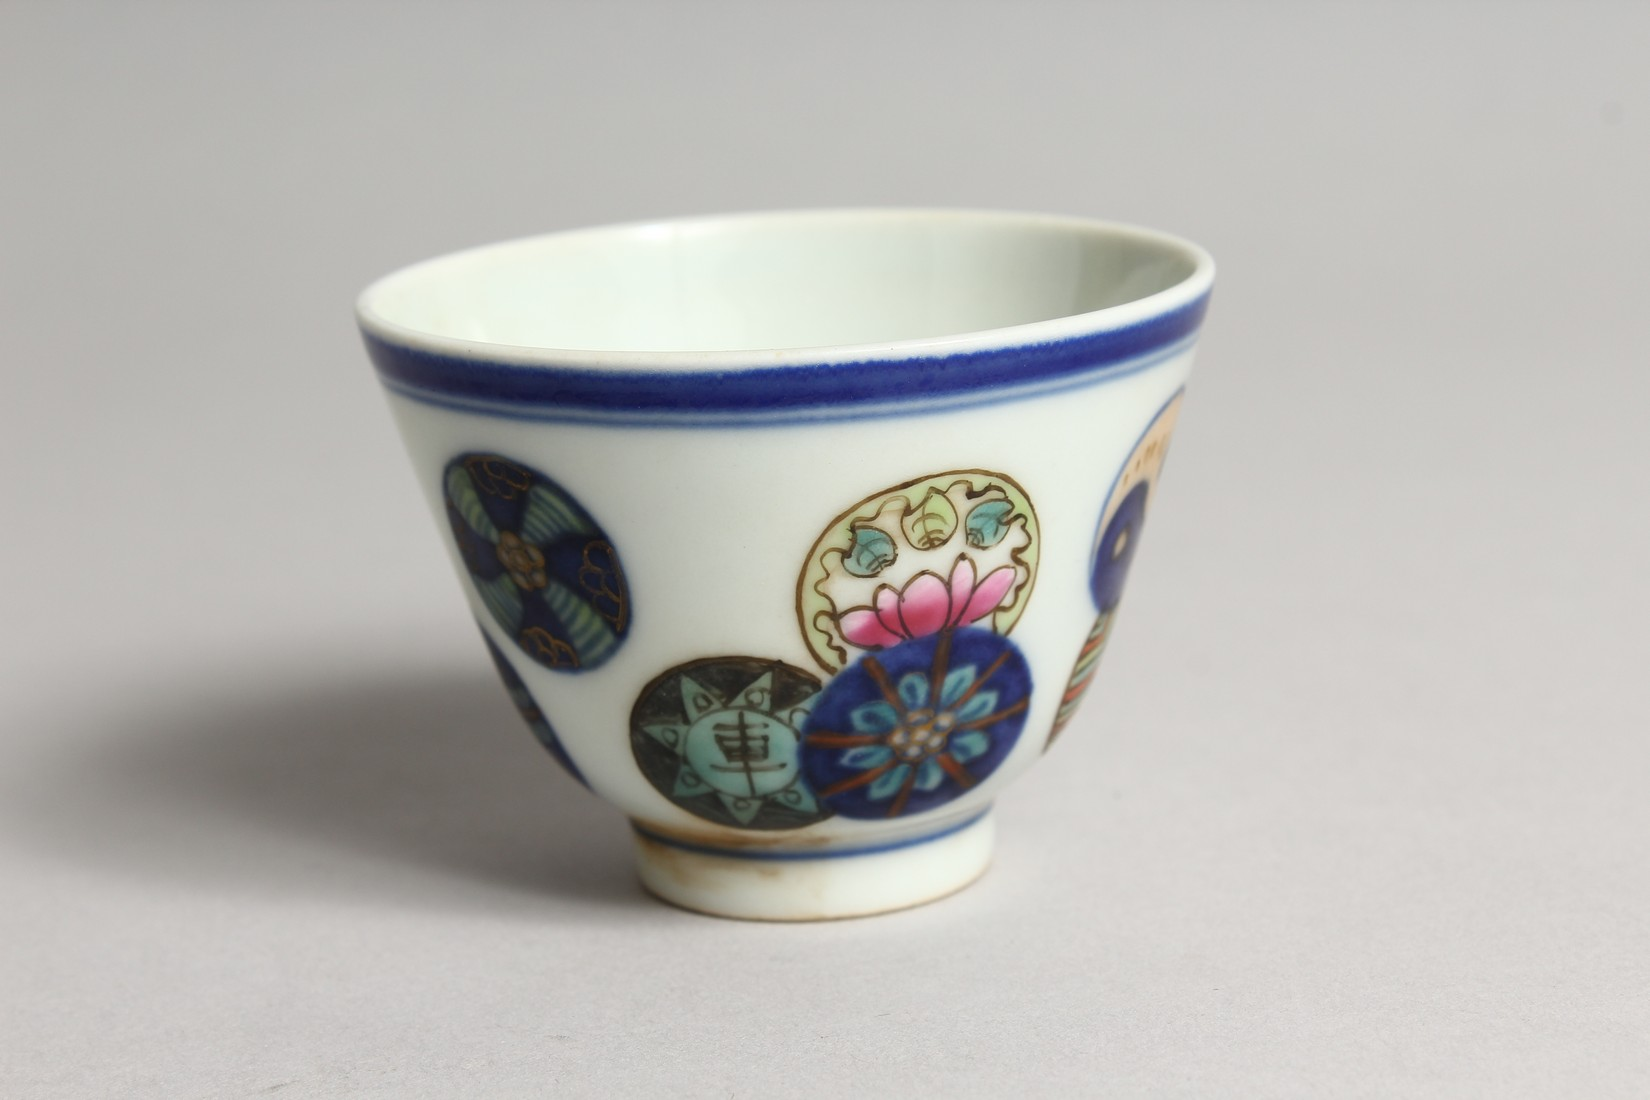 A SMALL CHINESE PORCELAIN RICE BOWL 2.75ins diameter. - Image 2 of 5